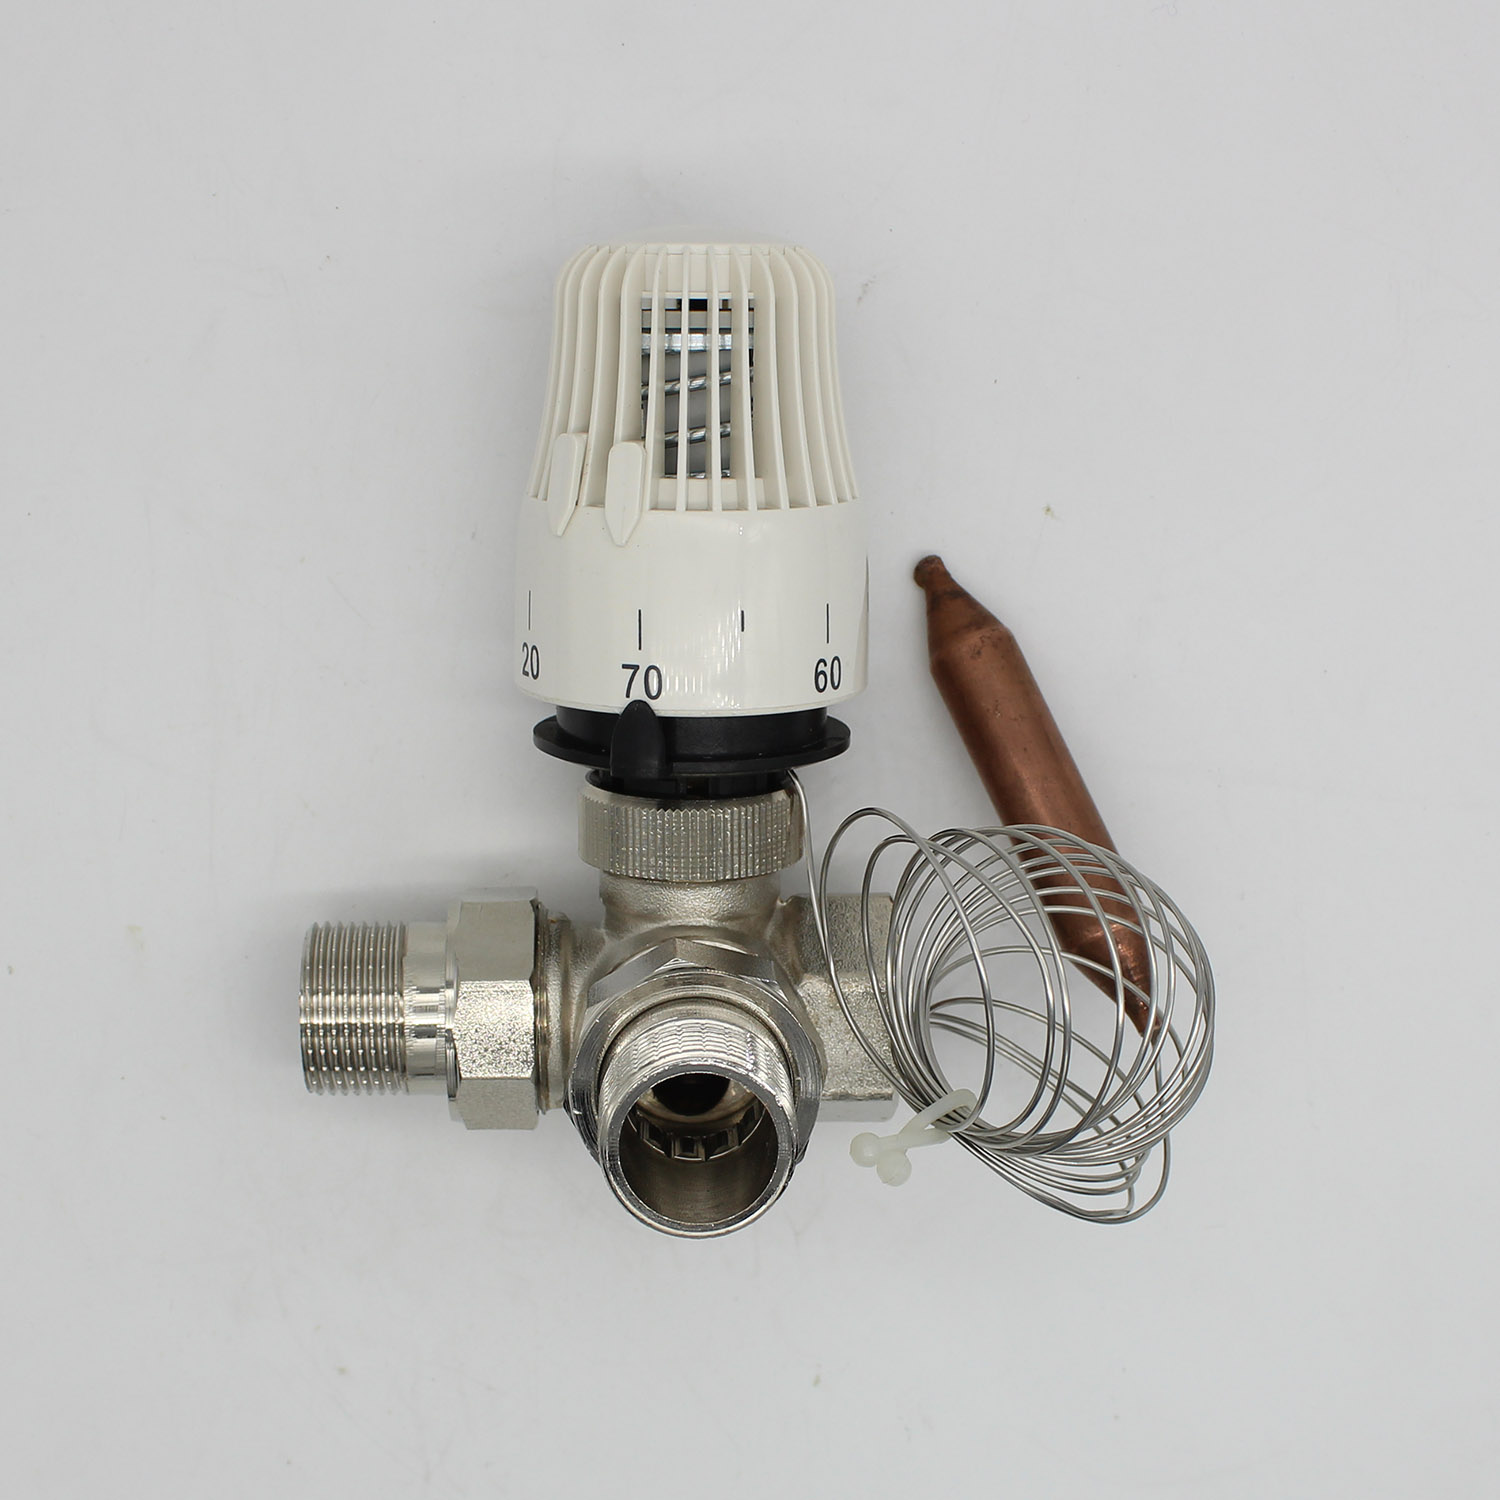 Energy saving 30-70 degree control Floor heating system thermostatic radiator valve M30*1.5 Remote controller 3 way  valve DN20Energy saving 30-70 degree control Floor heating system thermostatic radiator valve M30*1.5 Remote controller 3 way  valve DN20